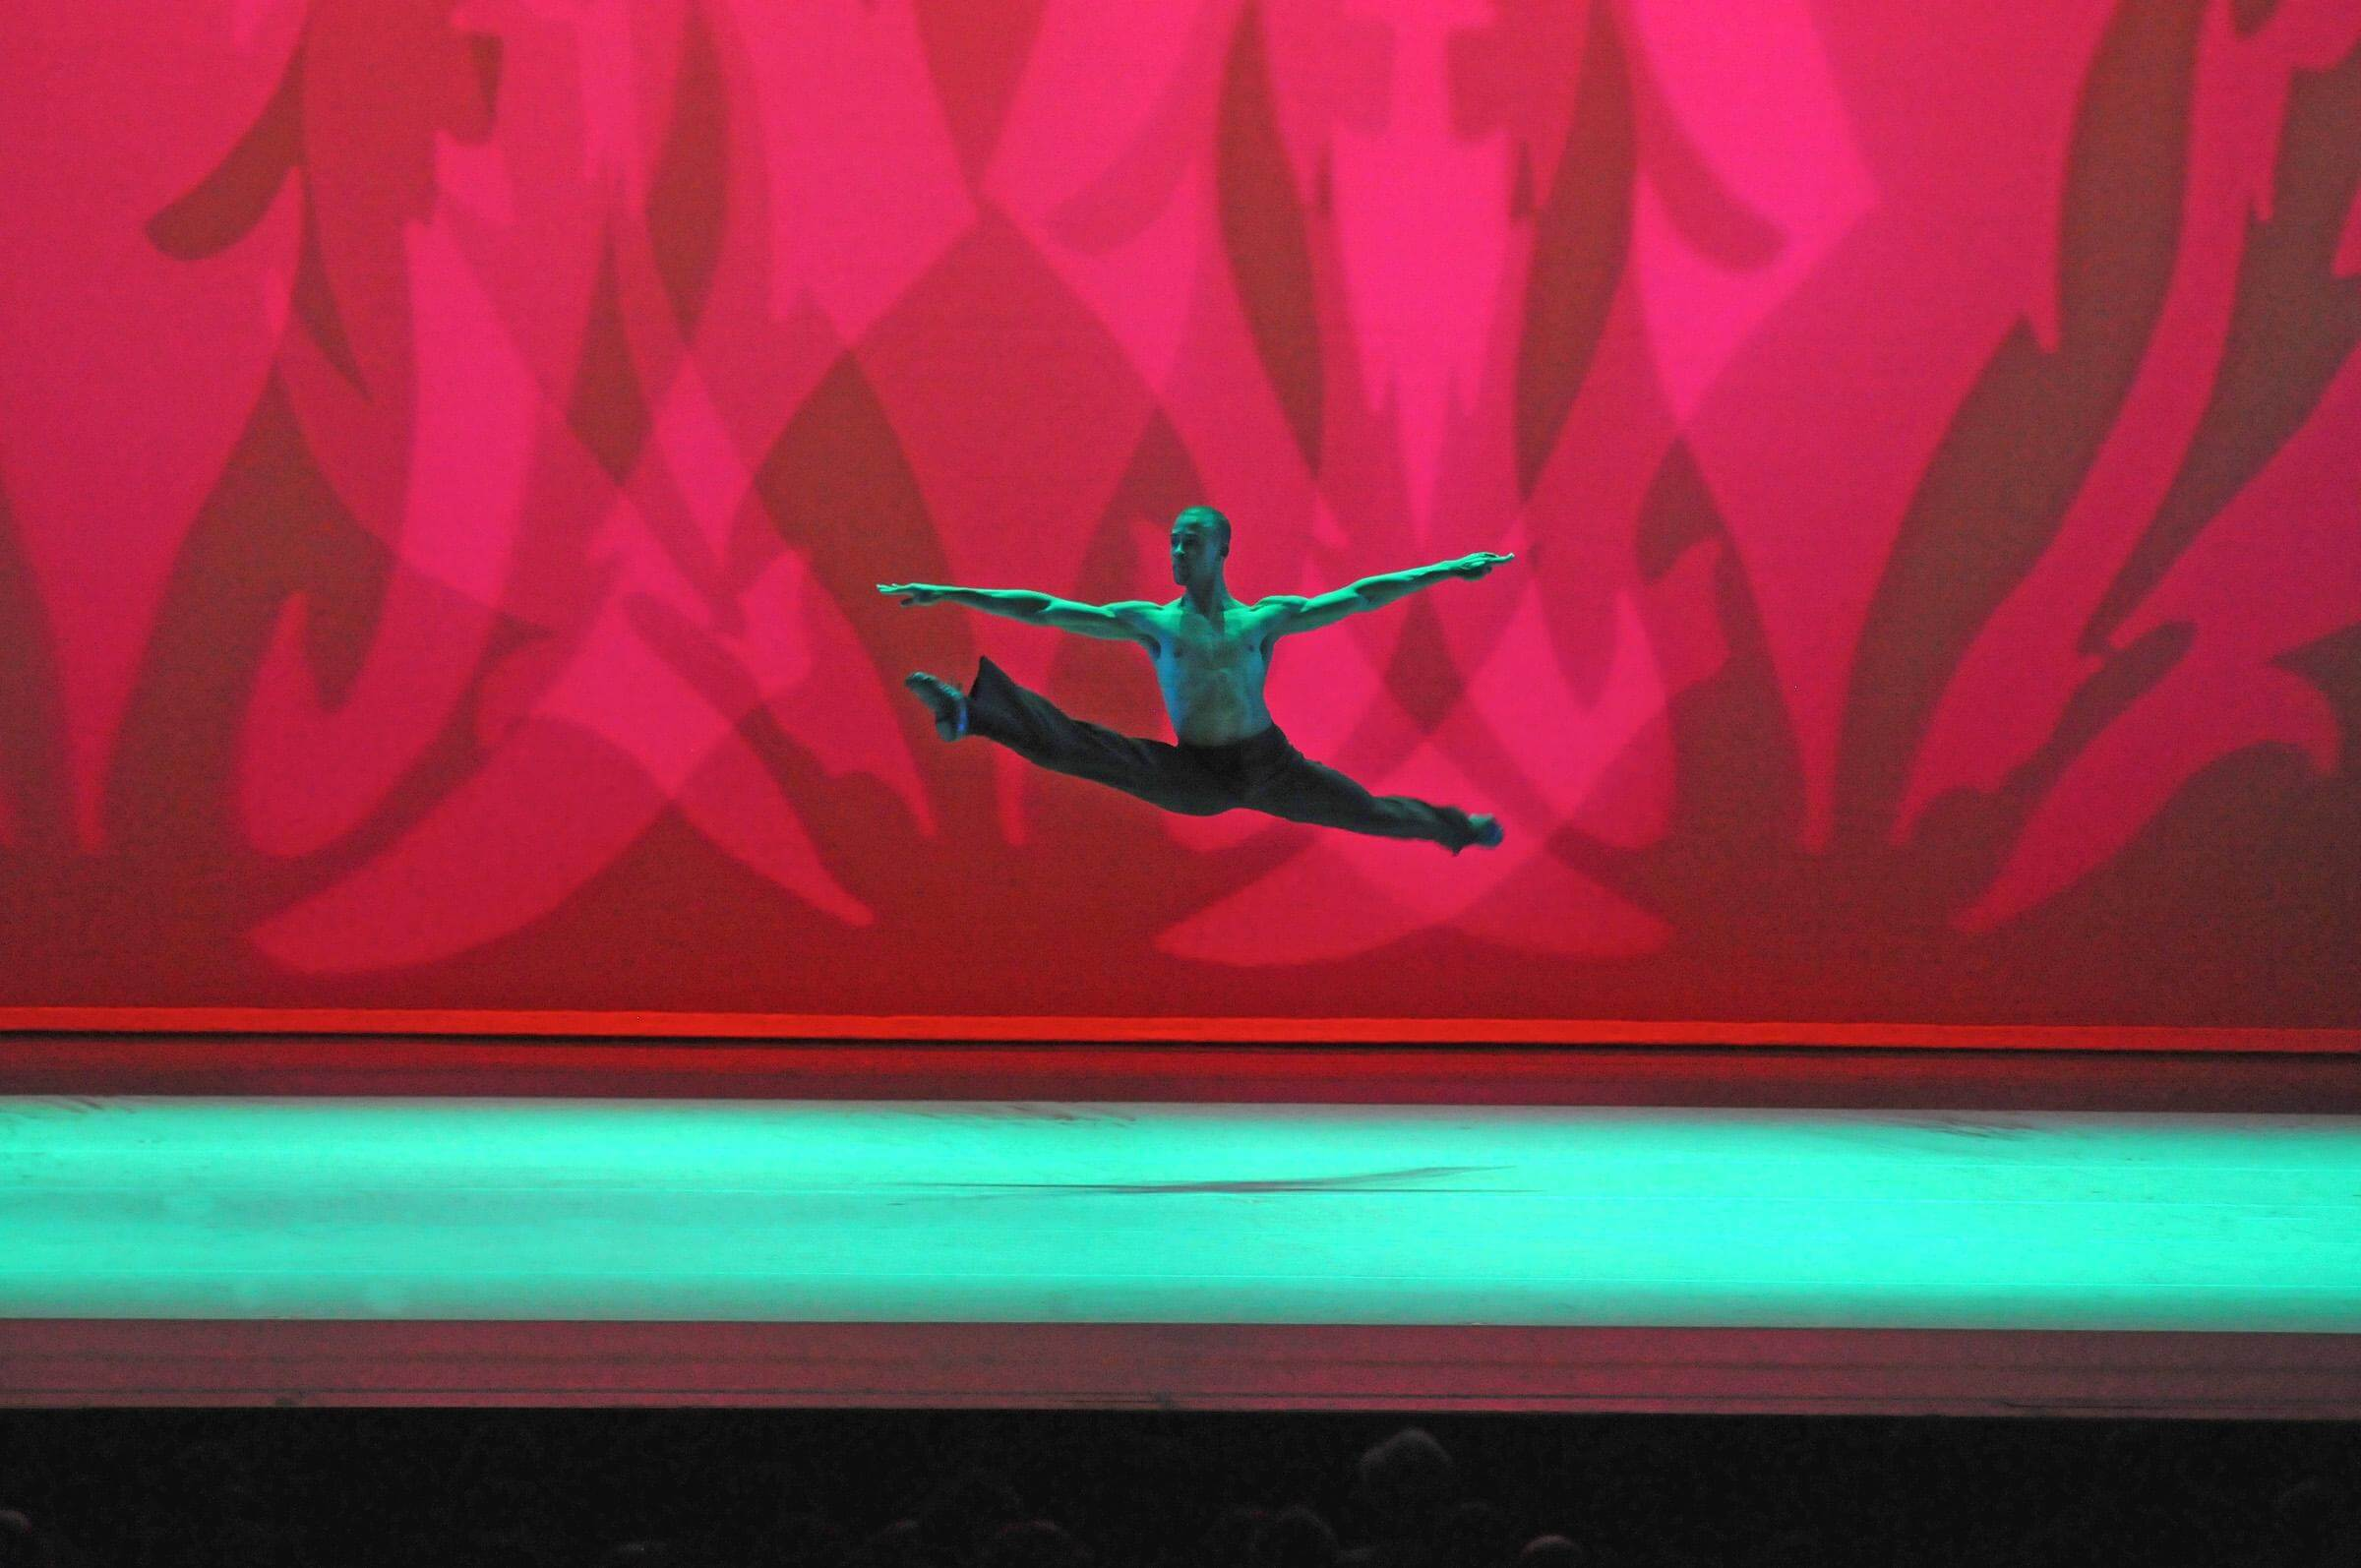 Revelations by Alvin Ailey | Alvin Ailey American Dance Theater